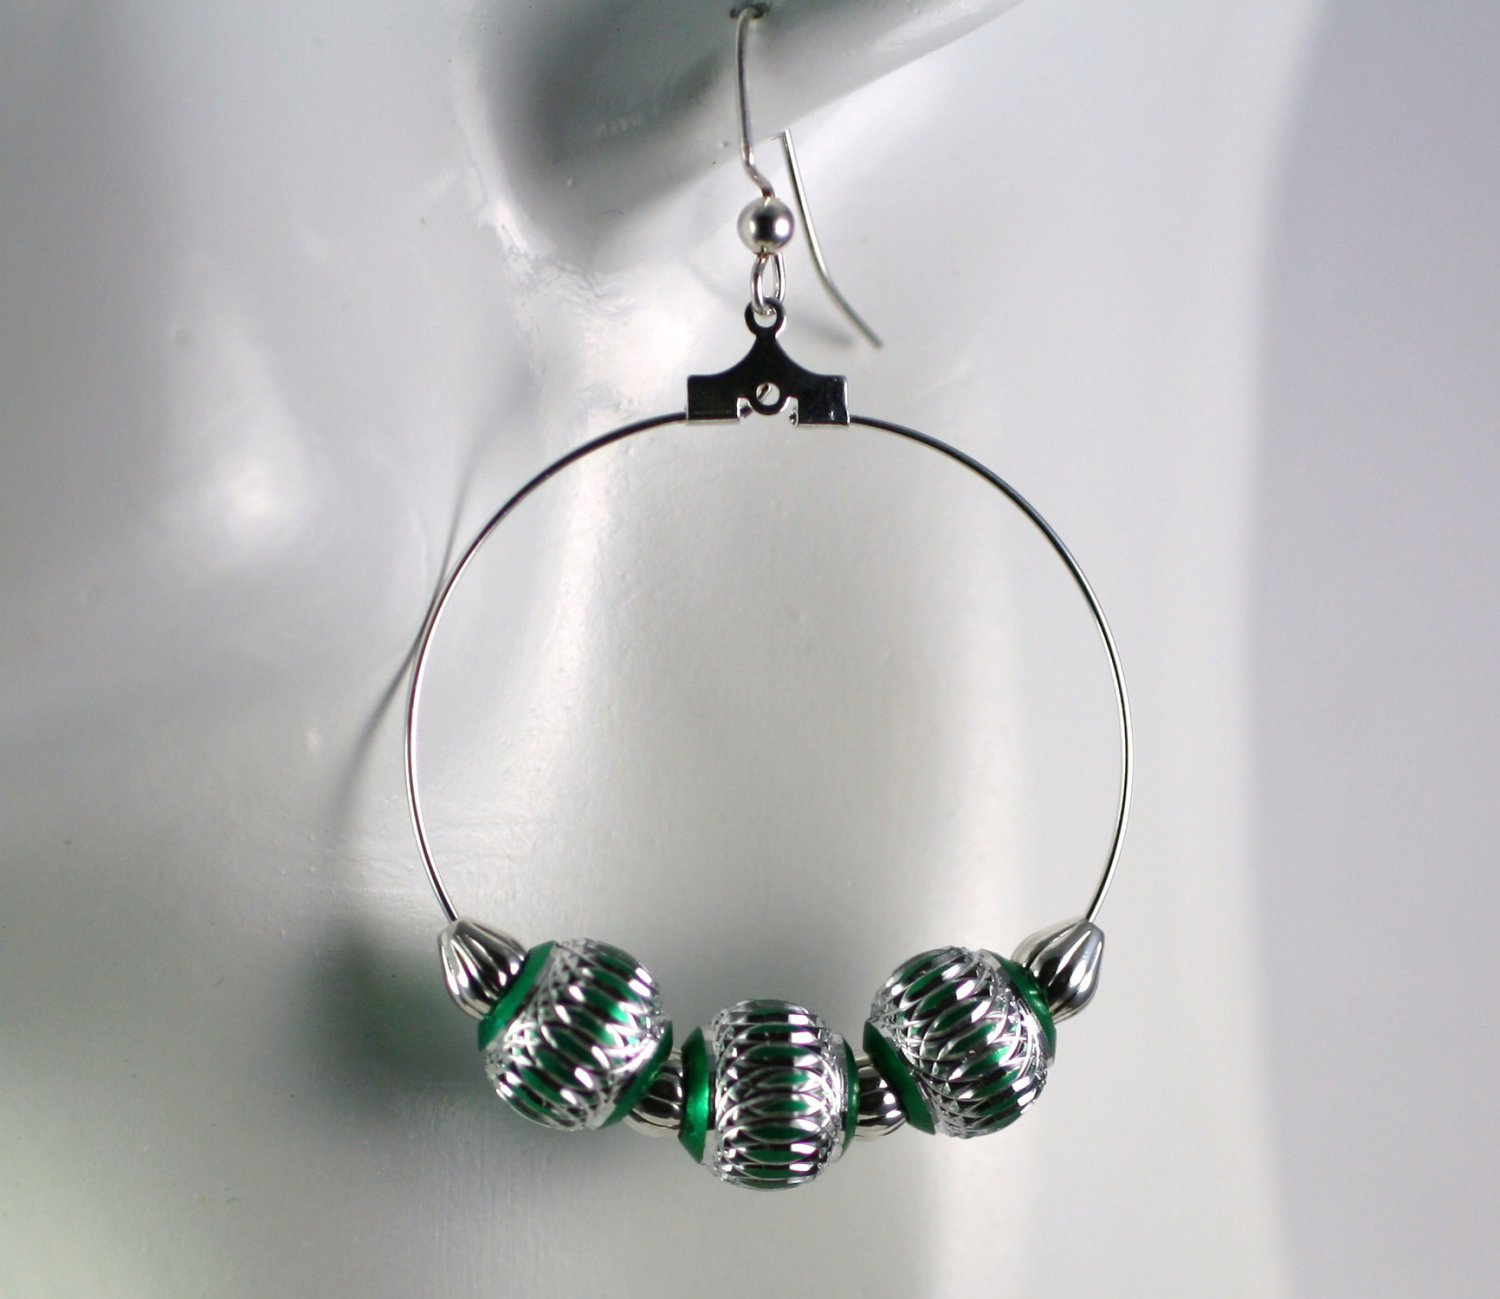 Silver Hoop Earrings with Silver and Green Beads 1.5 in. Diameter  Handcrafted Jewelry